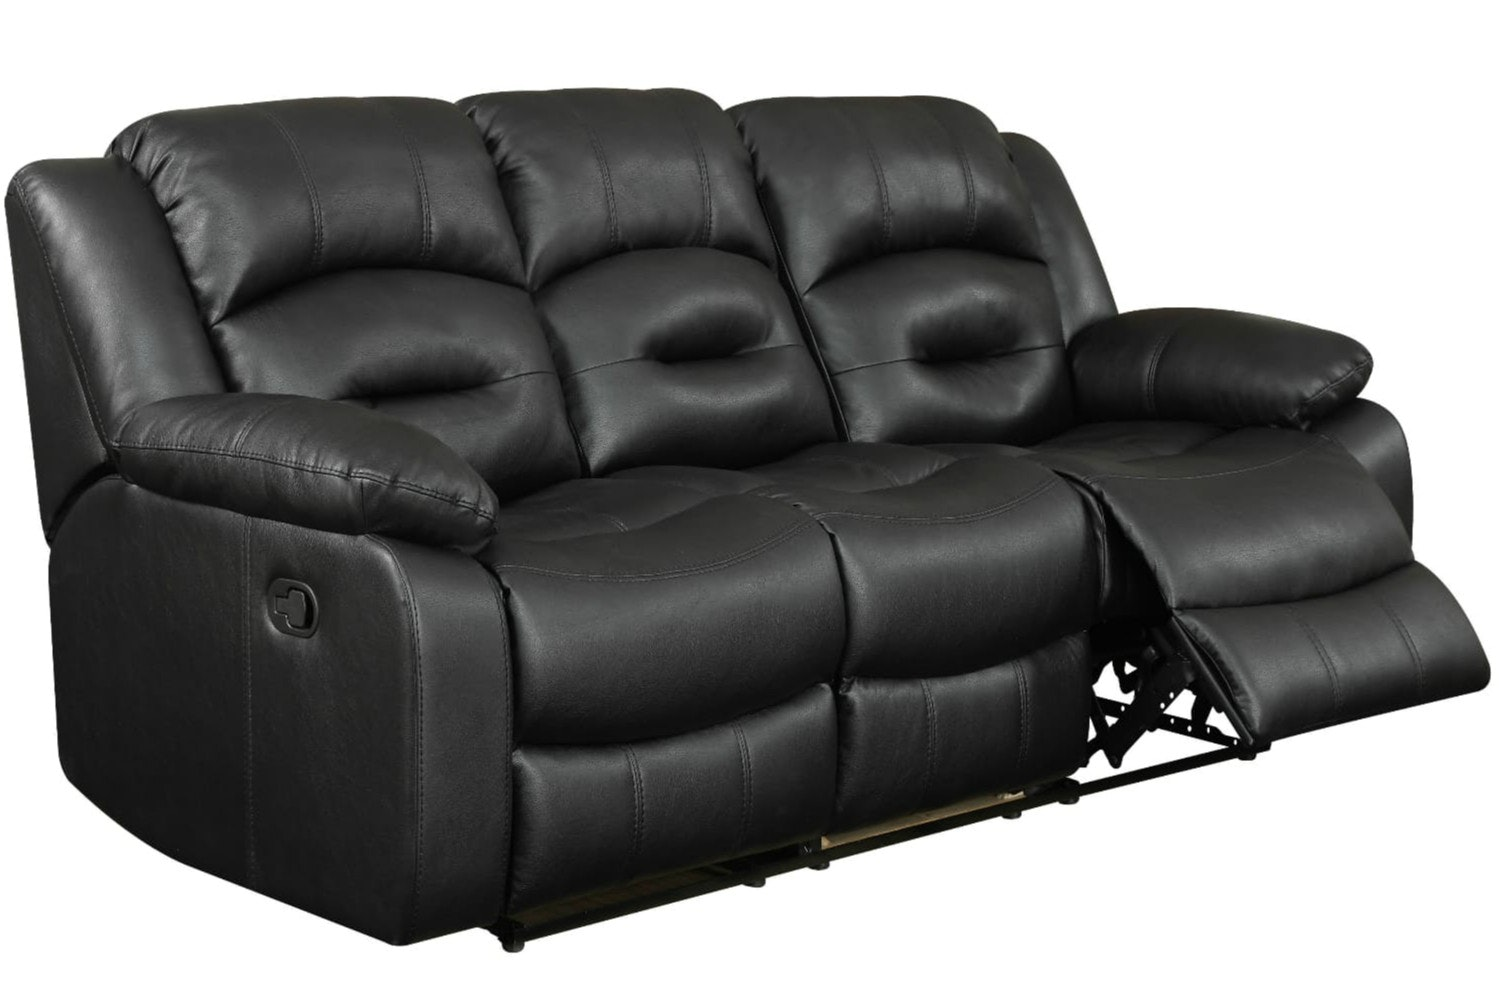 hunter 3 seater recliner sofa harvey norman sofas ireland rh harveynorman ie 3 seater recliner sofa dimensions 3 seater recliner sofa weight